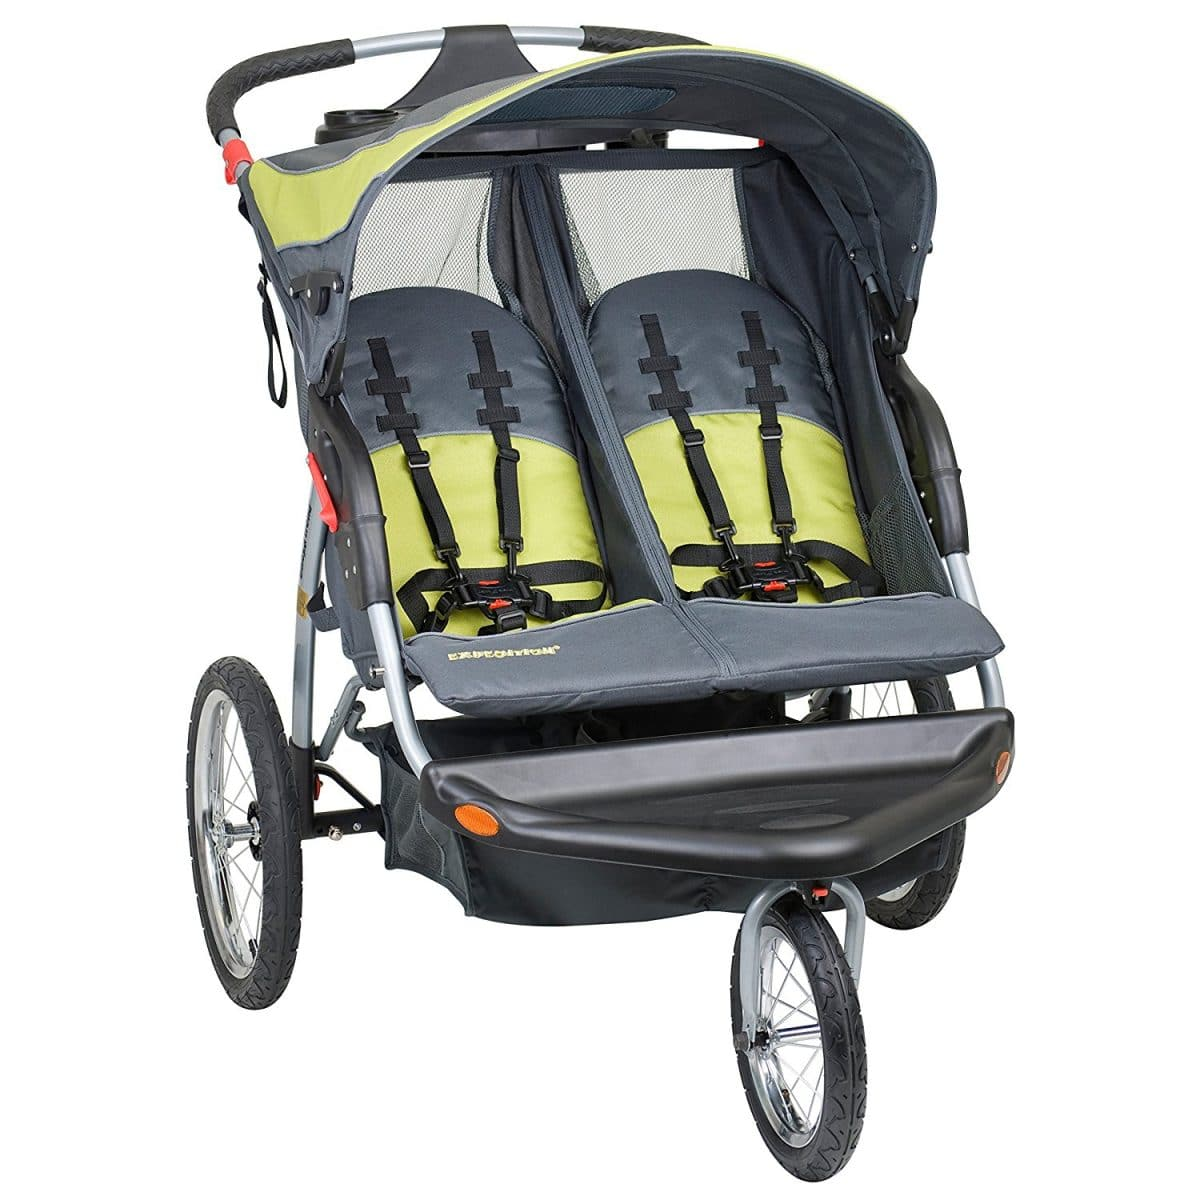 Jogging Stroller How To Use The 10 Best Double Jogging Strollers To Buy 2019 Littleonemag